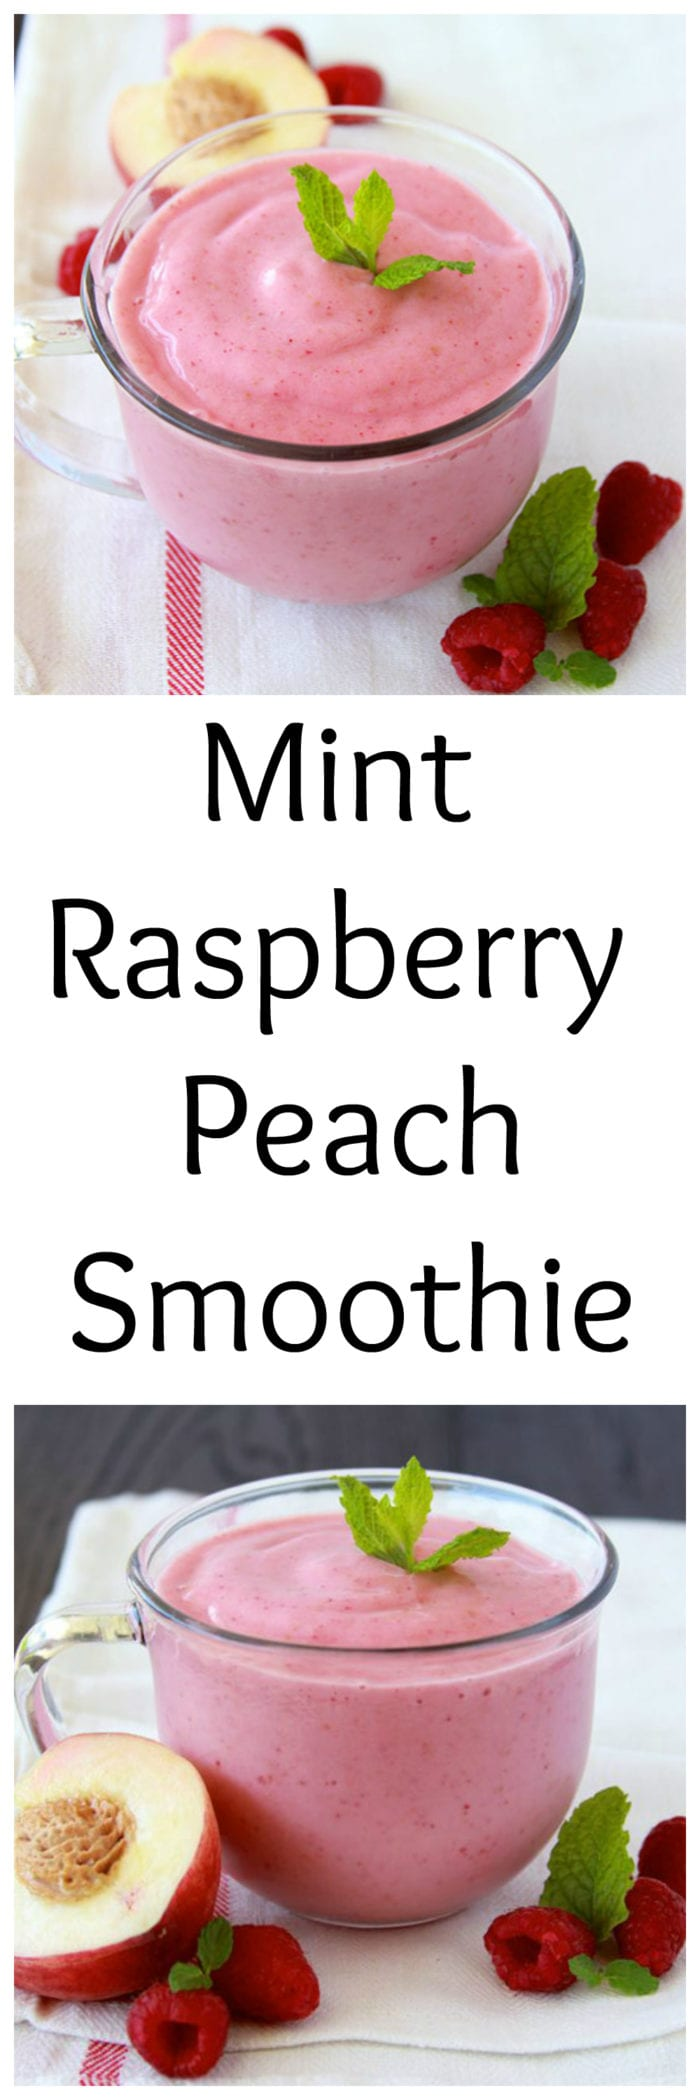 Mint Raspberry Peach Smoothie is packed with protein and it's a super healthy way to start off your day!www.cookingwithruthie.com